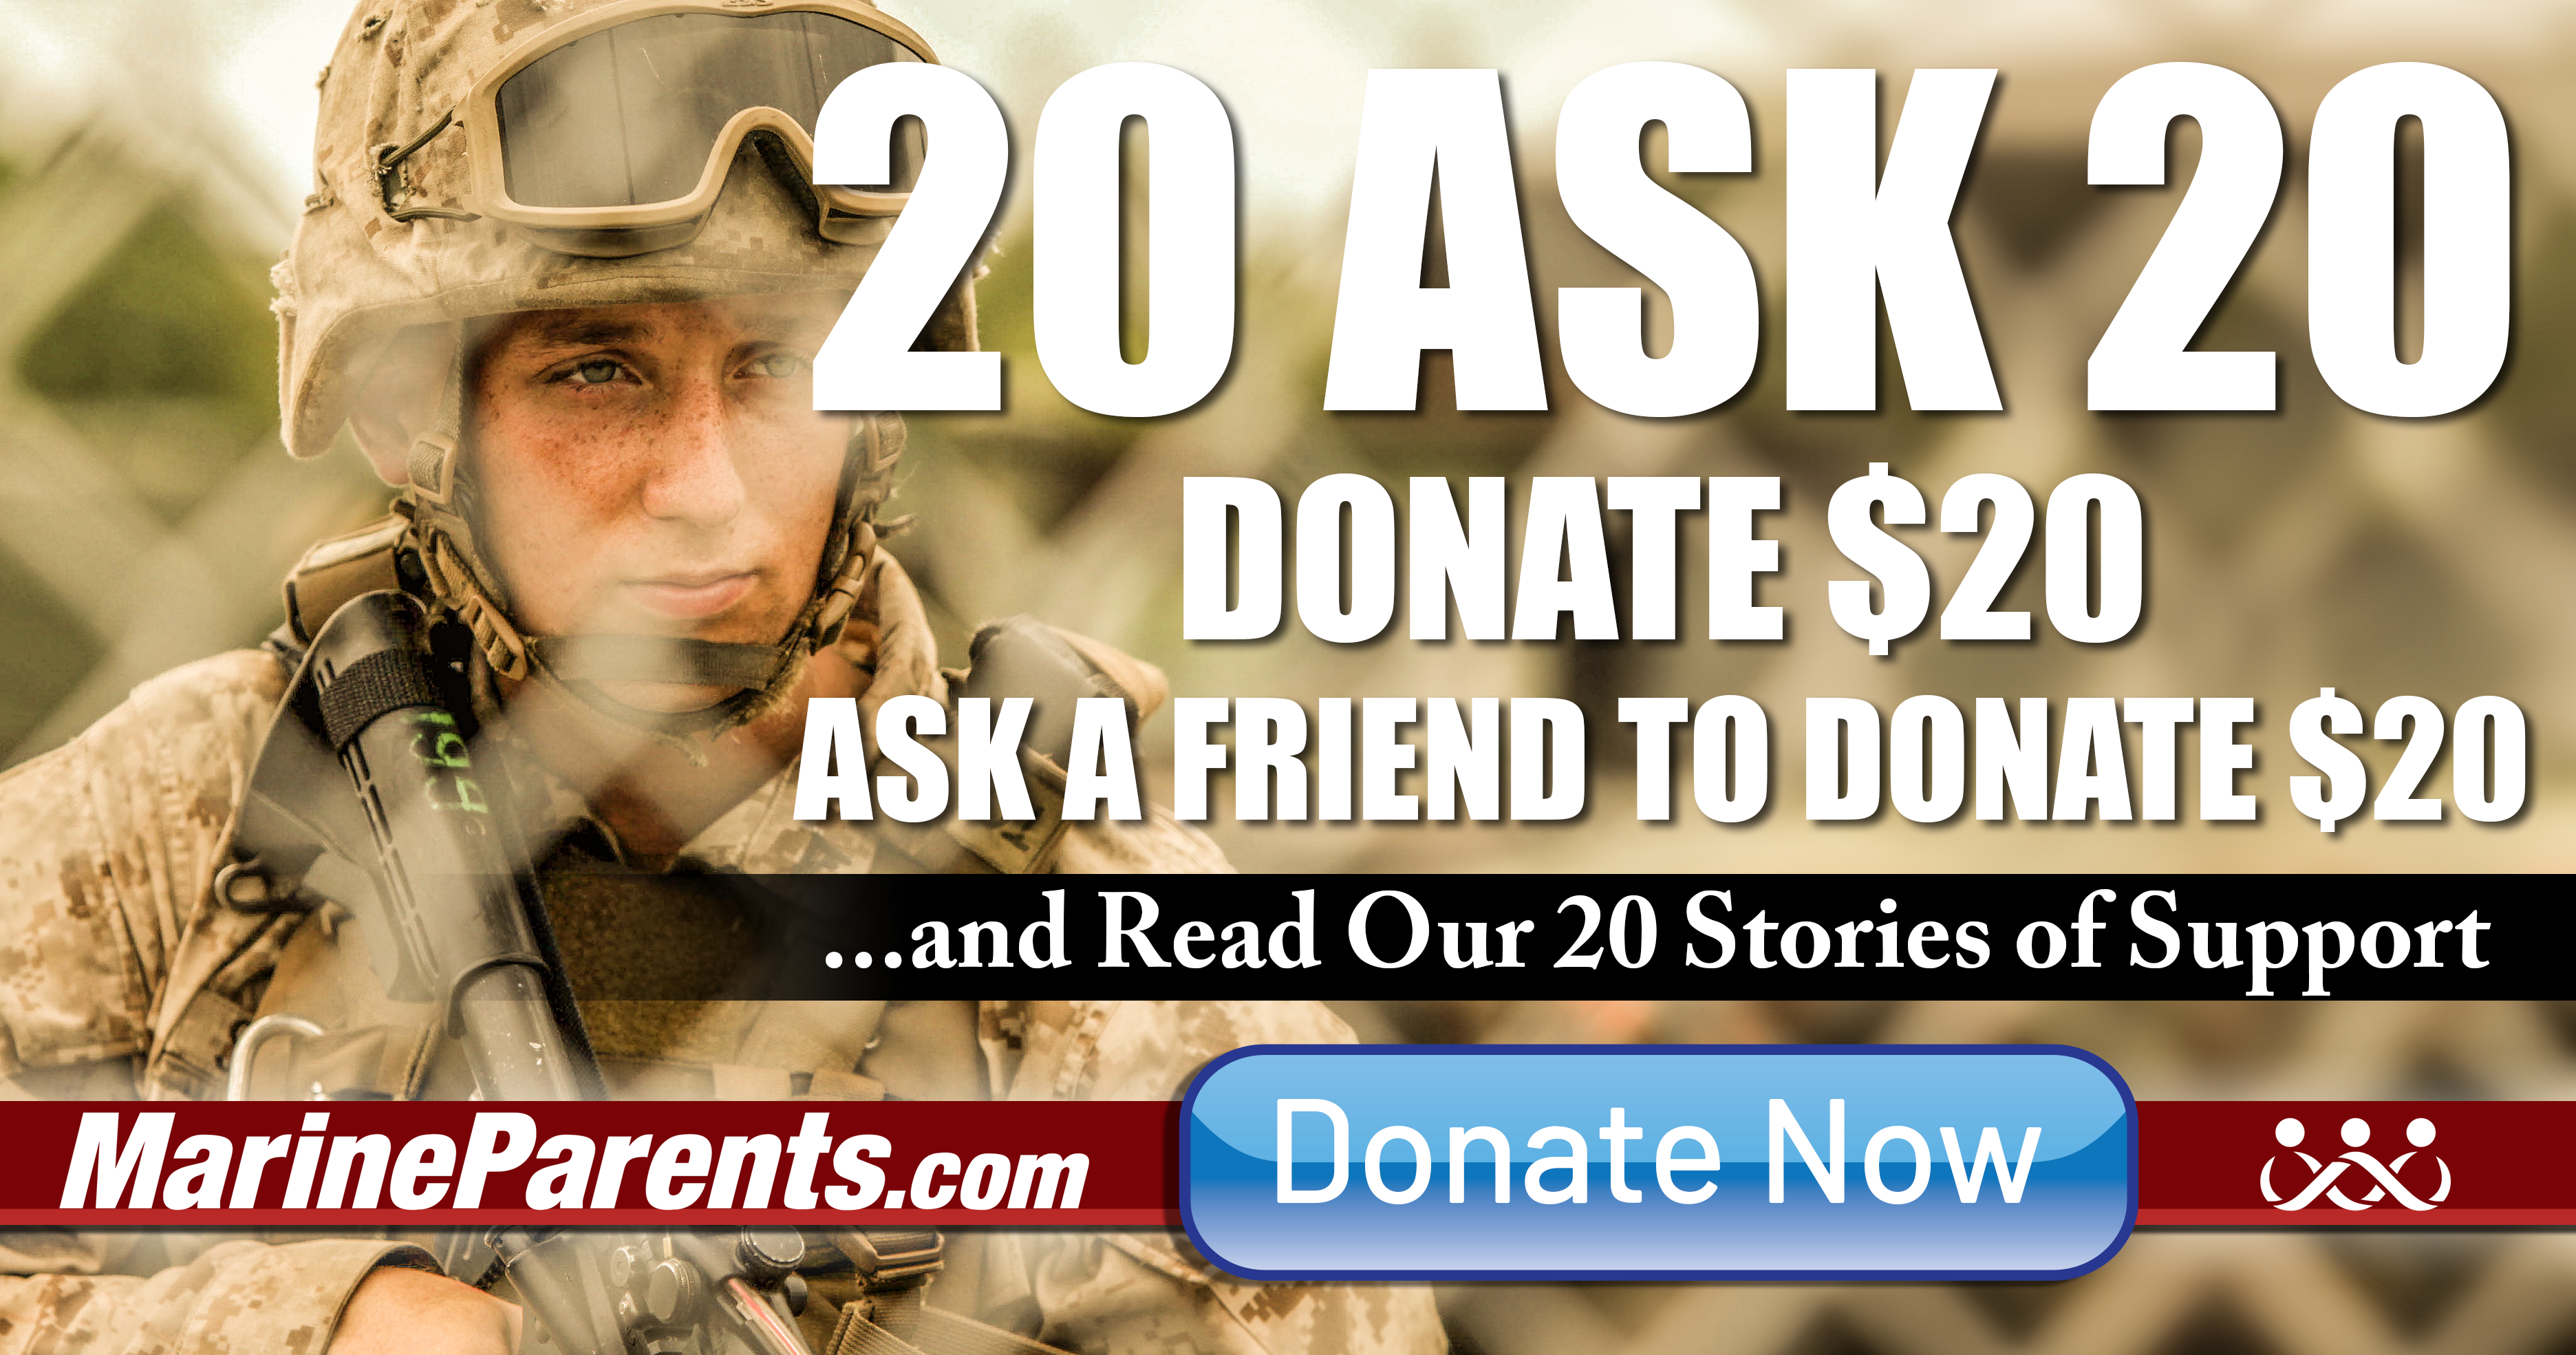 Give 20 Ask For 20 Fundraising Campaign Donate Now